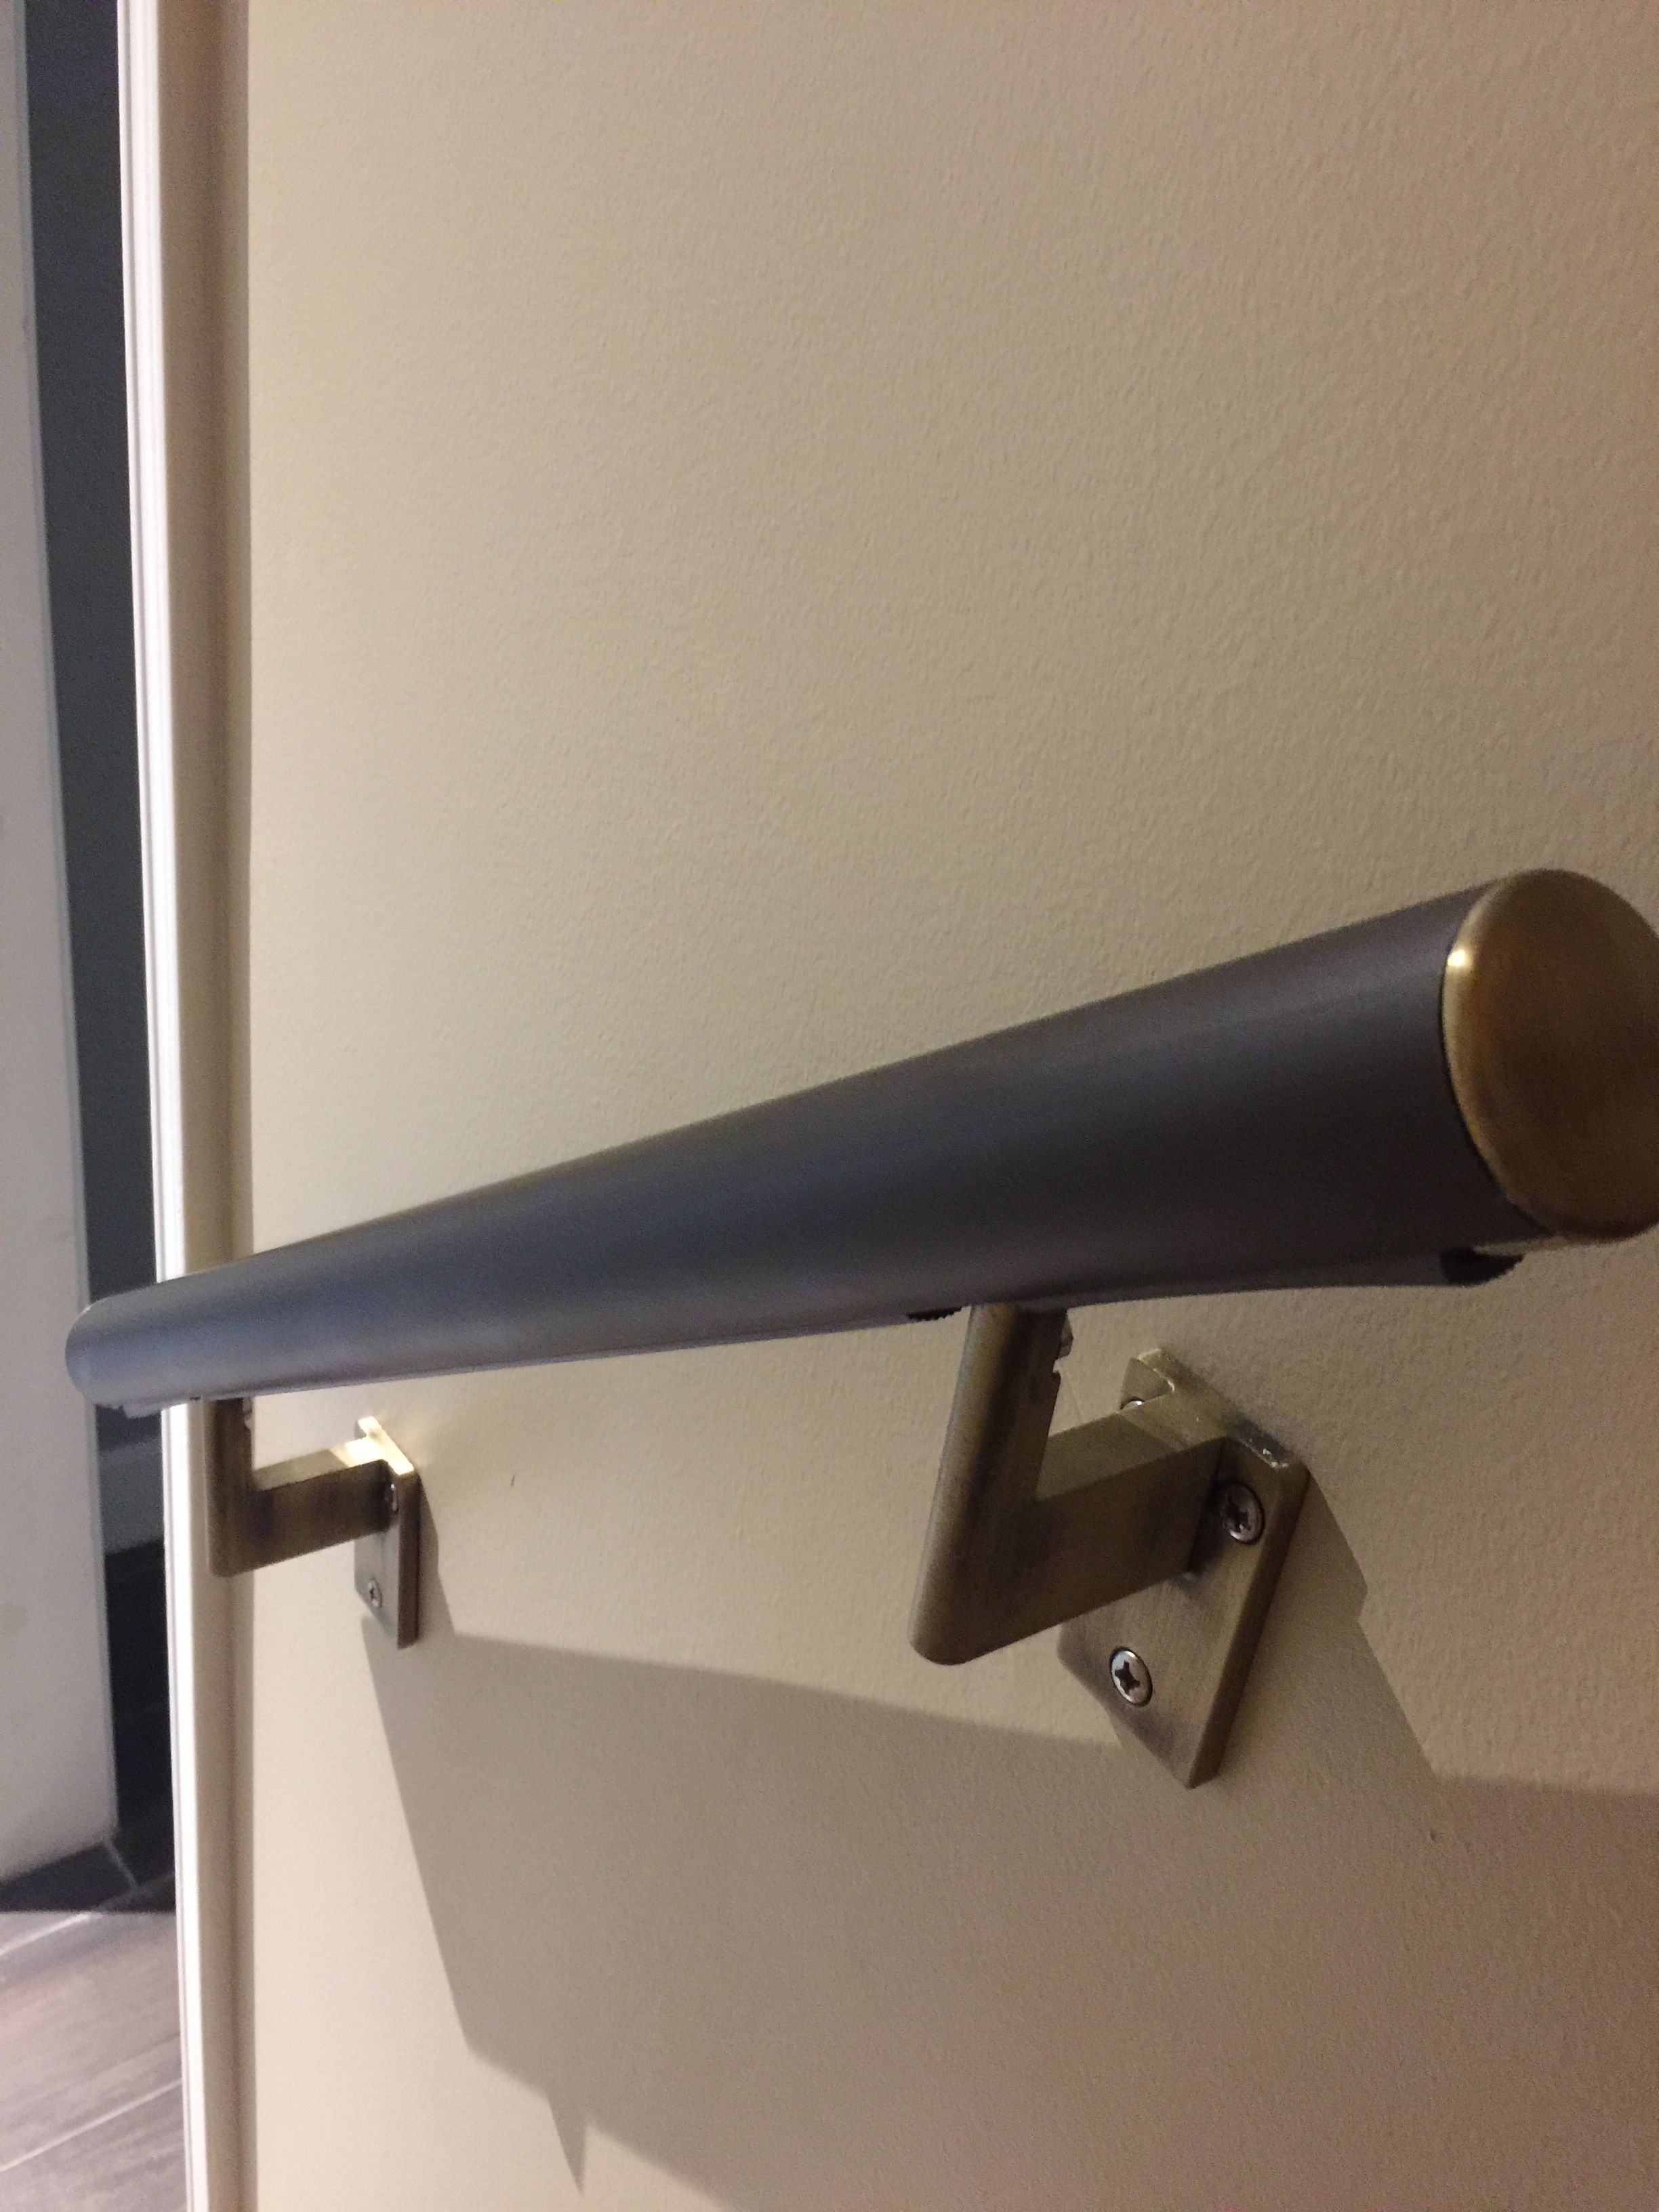 Promenaid Architectural Bronze Anodized Aluminum With Antique Brass Wall Brackets And Endcaps Farther Pt Houston Aluminum Handrail Handrails Ceiling Lights